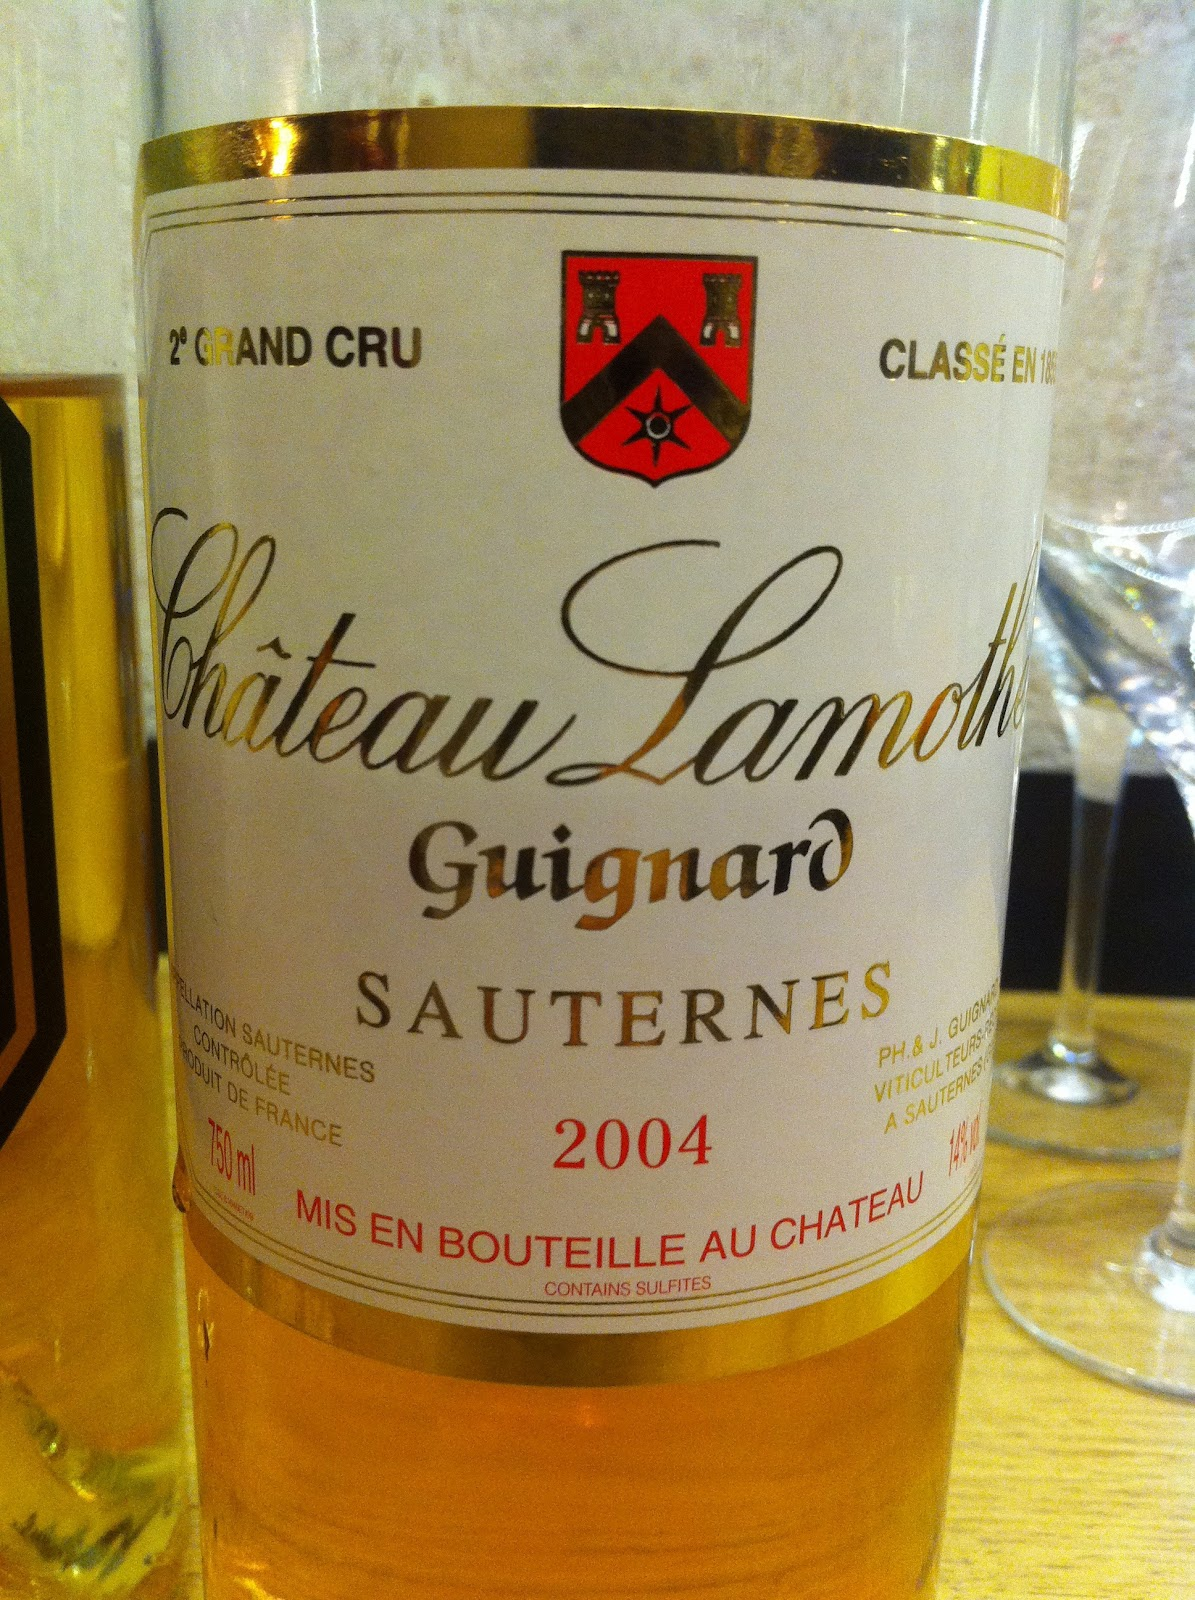 Chteau Lamothe Guignards 2004 Struck Me As Notably Mushroomy On The Nose Which Made For A Pleasantly Necrotic Contrast To Palates Masculine